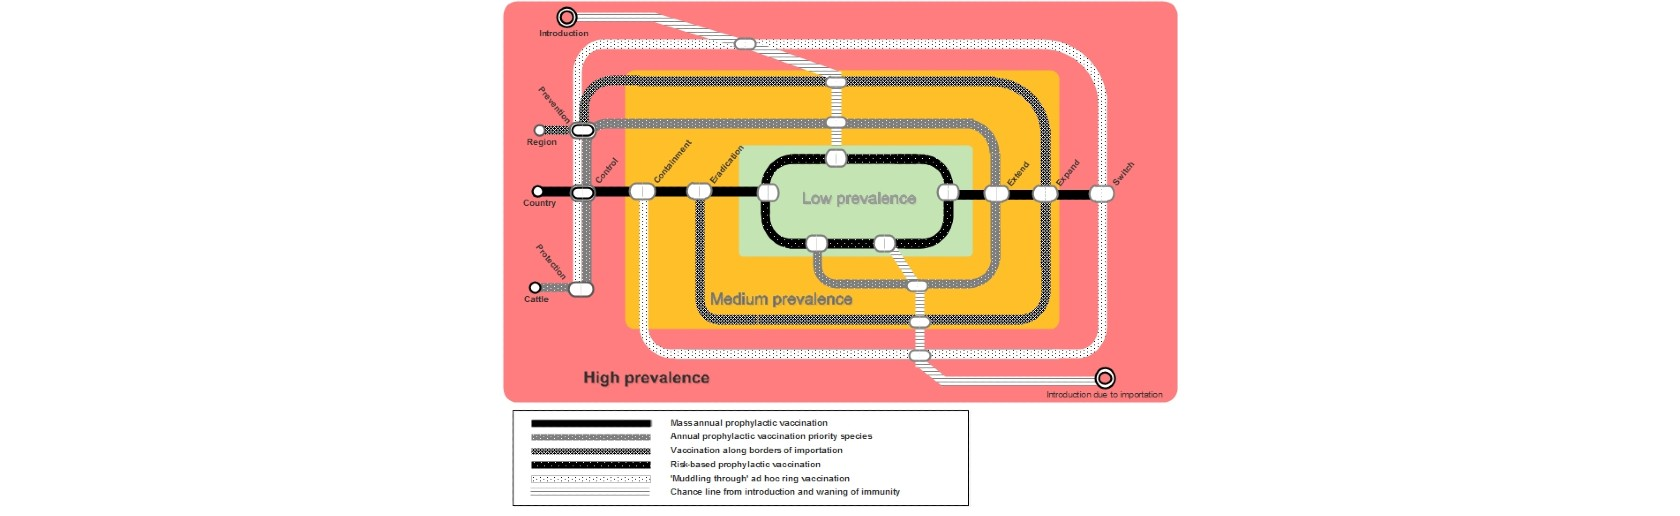 Infographic of vaccination and disease prevalence, resembling a subway map